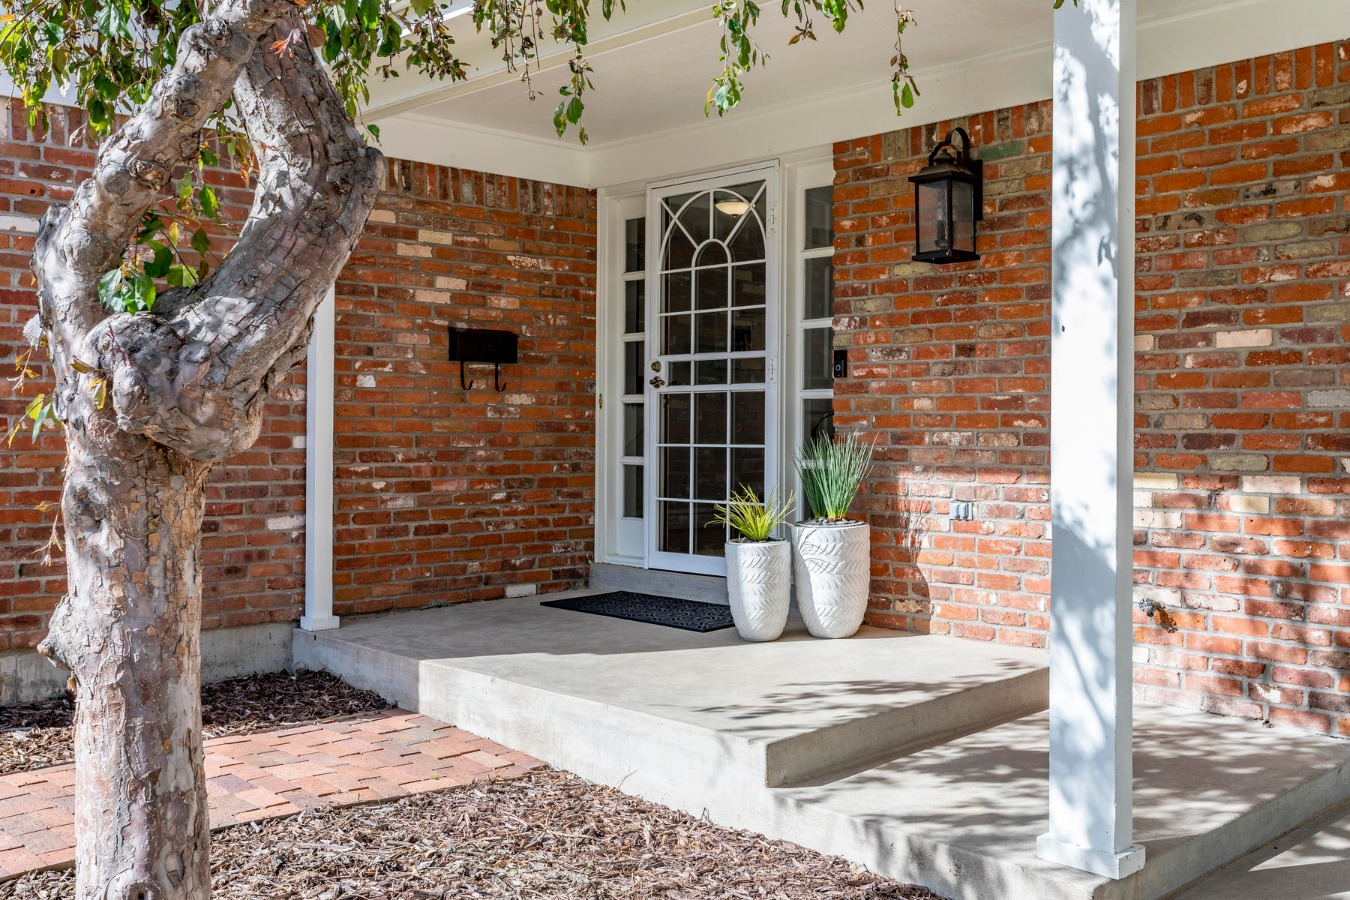 Come On In to See All Of This Great Home!